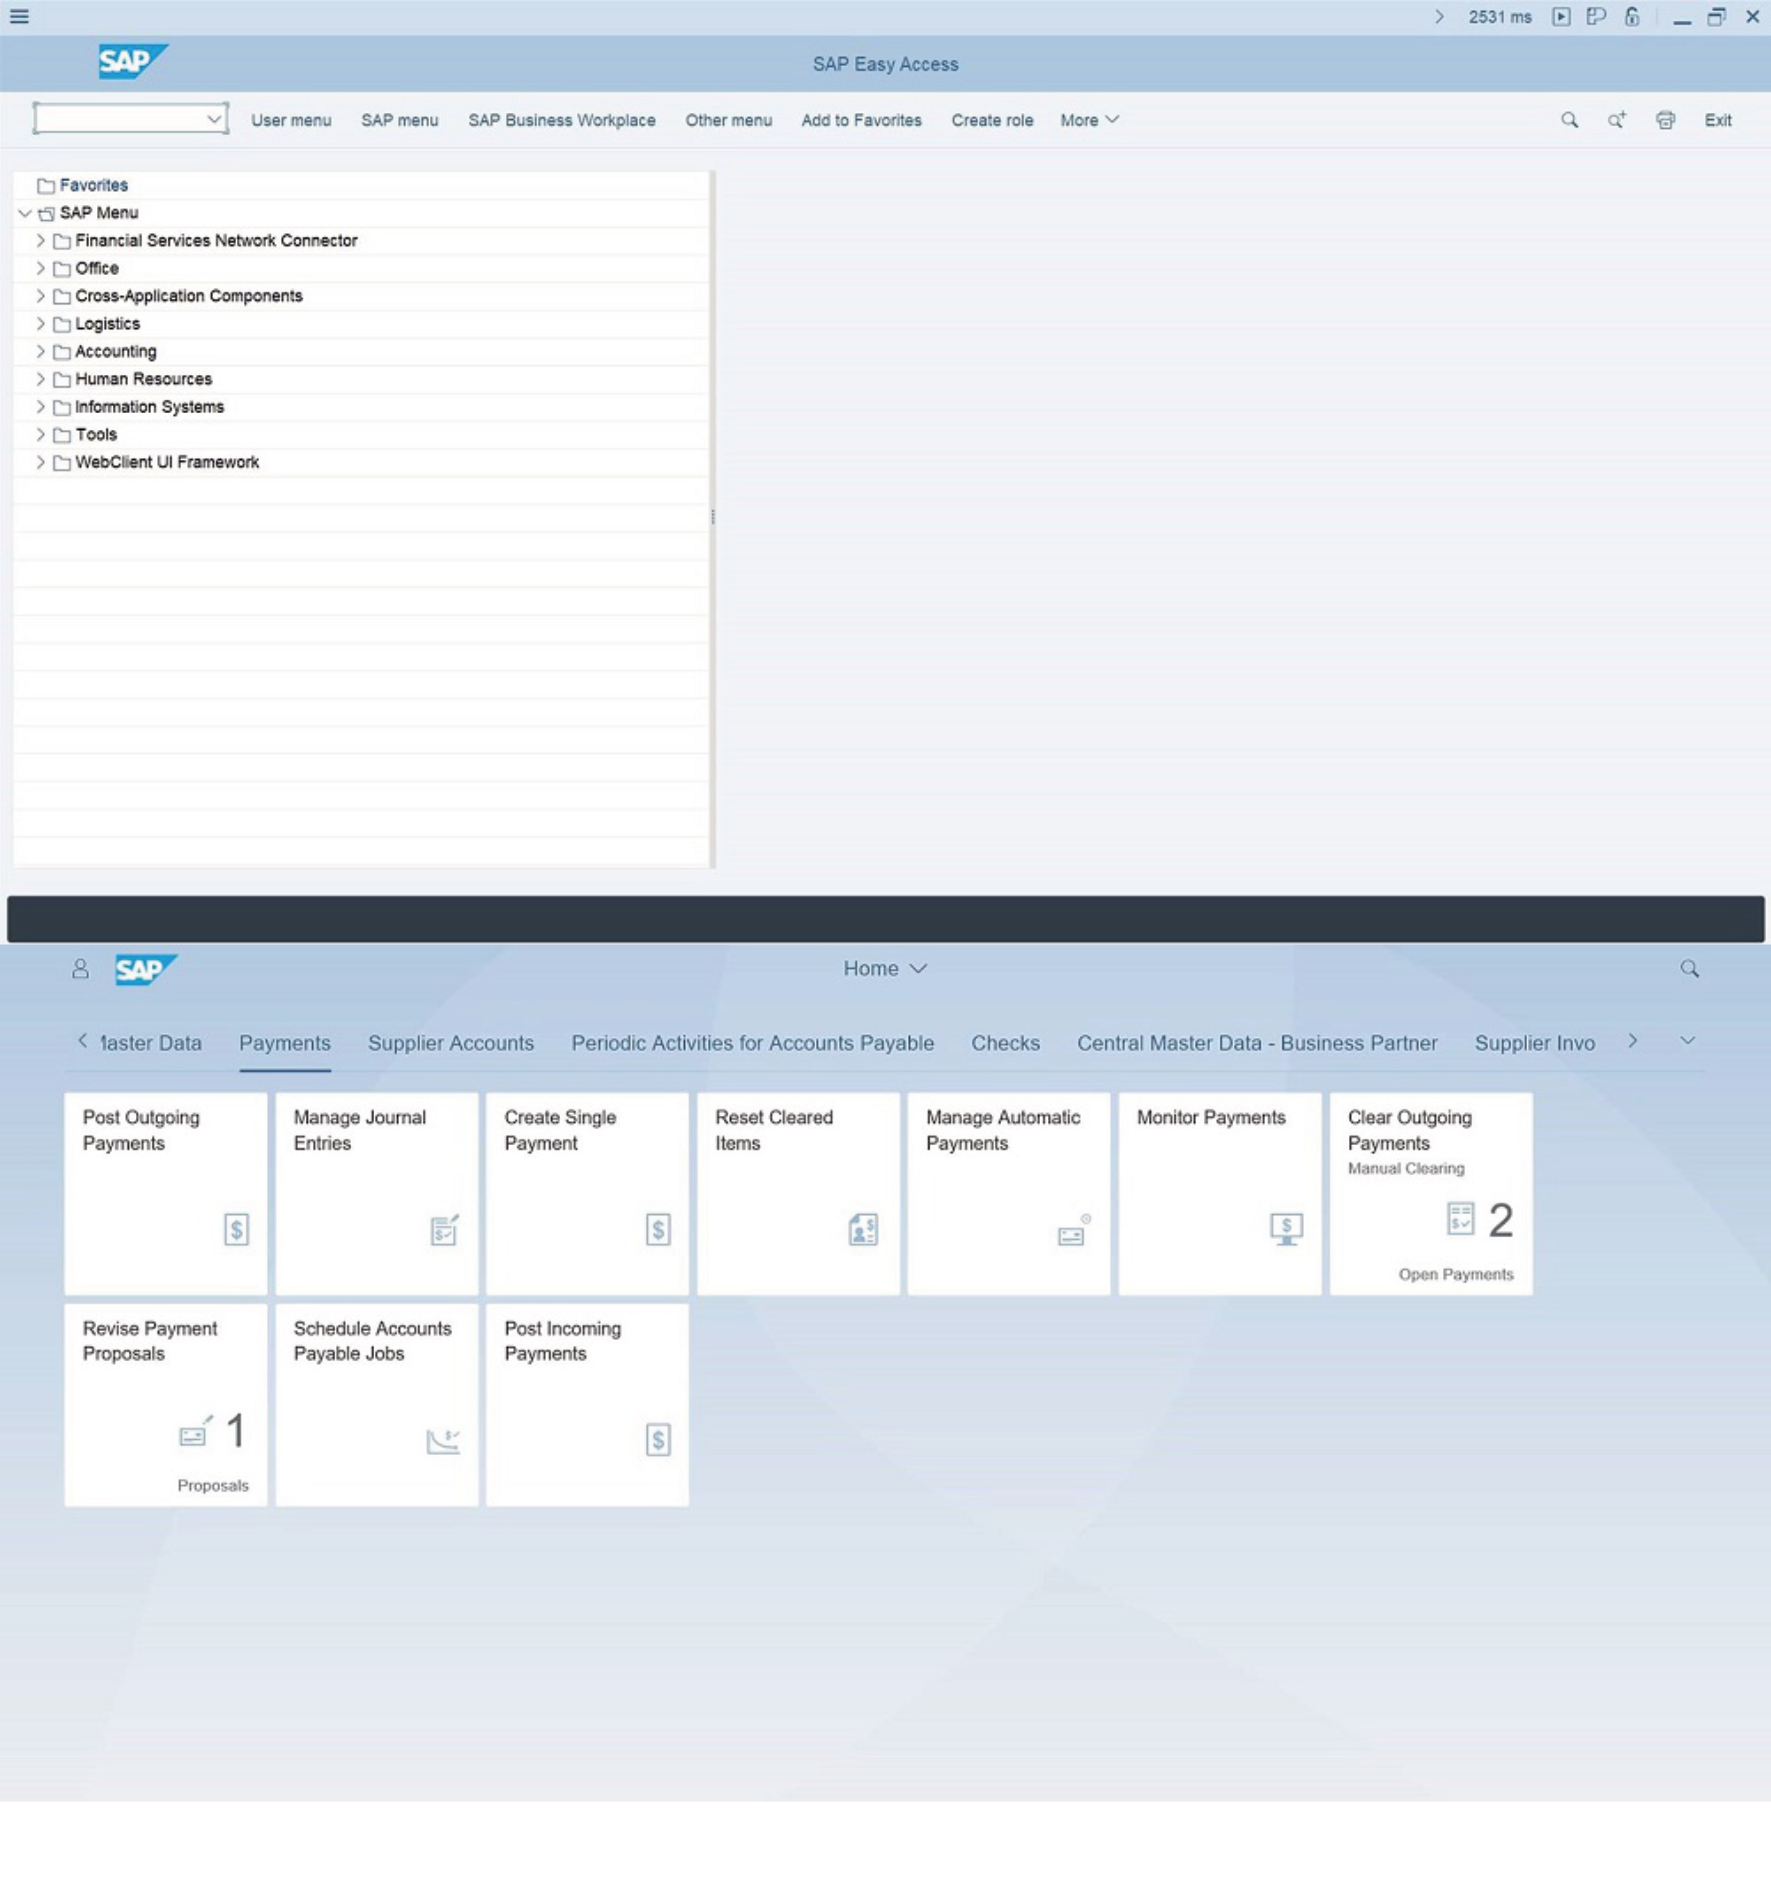 sap-access-fiori.png